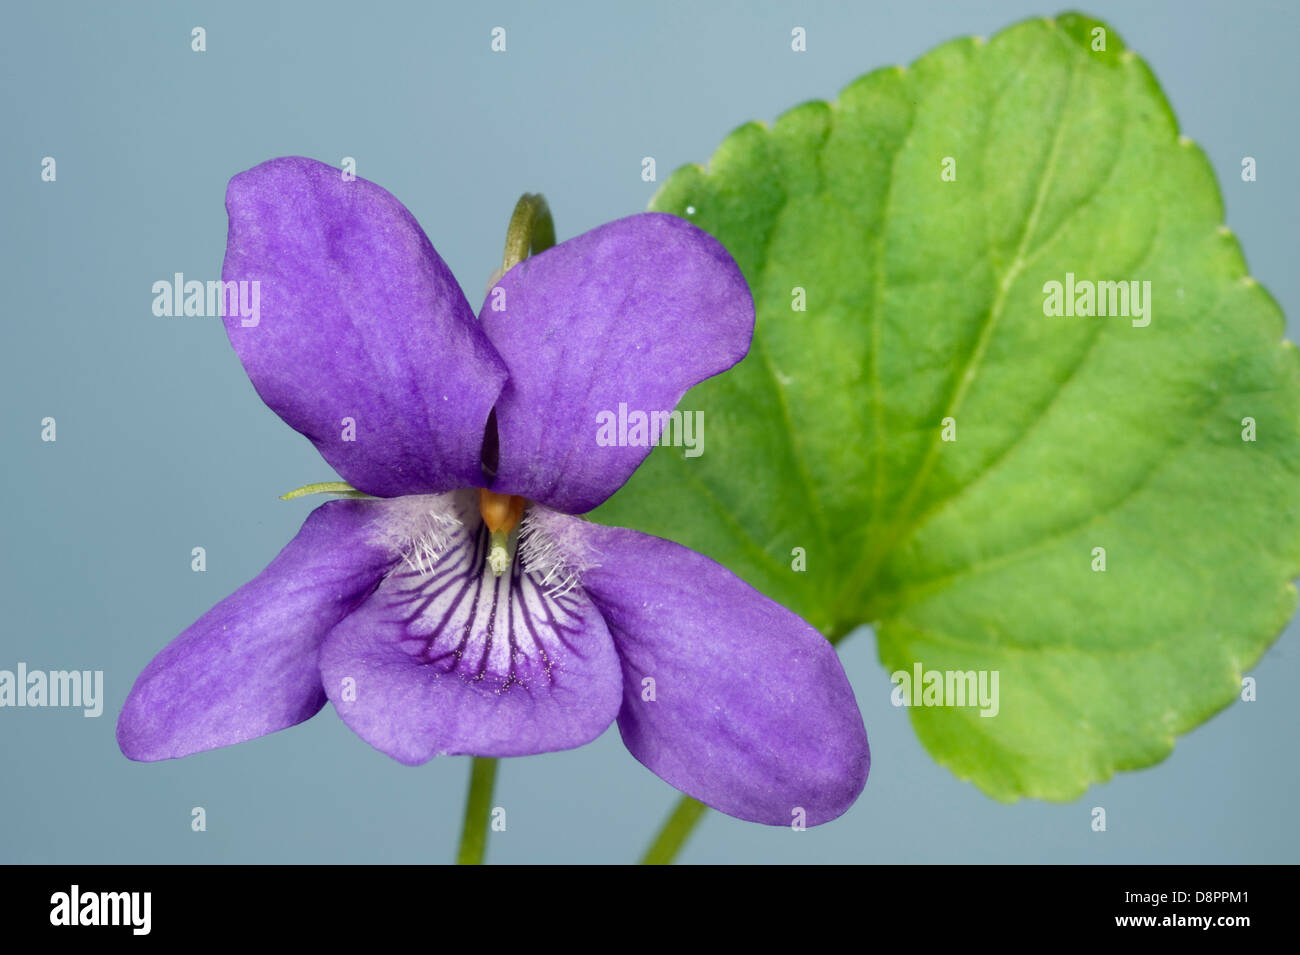 Early dog violet, Viola reichenbachiana, flower and leaf - Stock Image